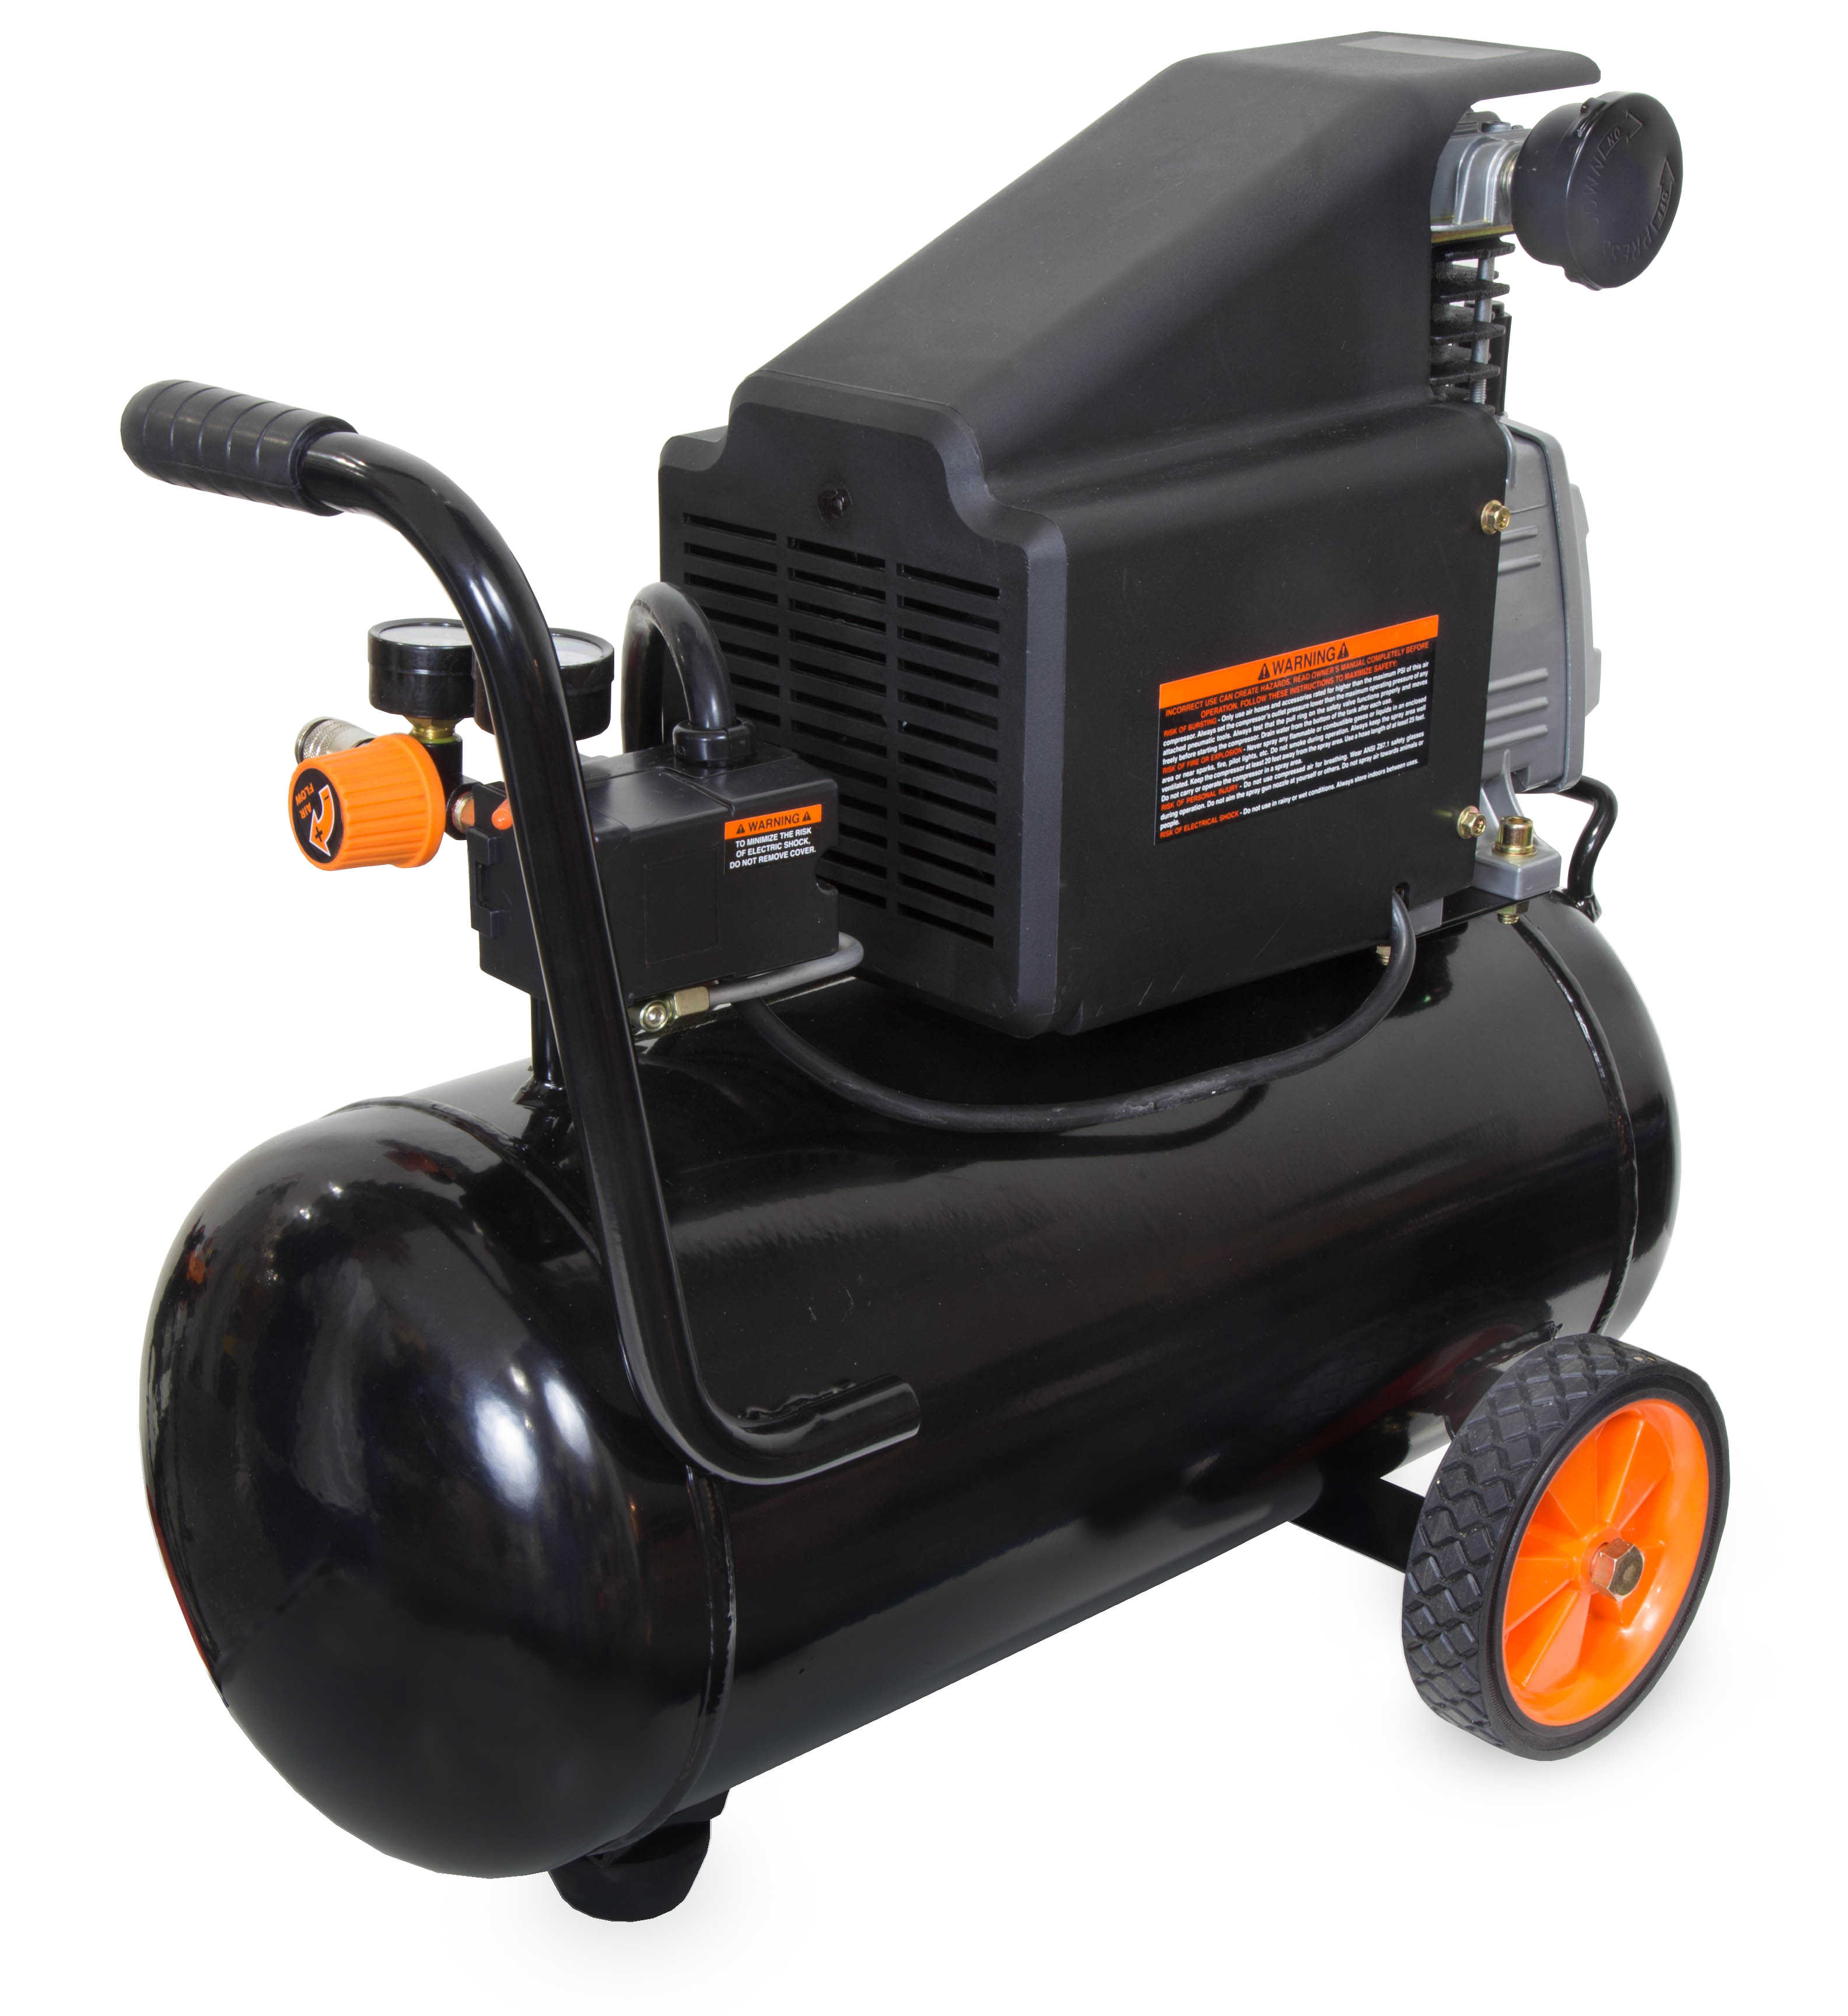 WEN 6-Gallon Oil-Lubricated Portable Horizontal Air Compressor